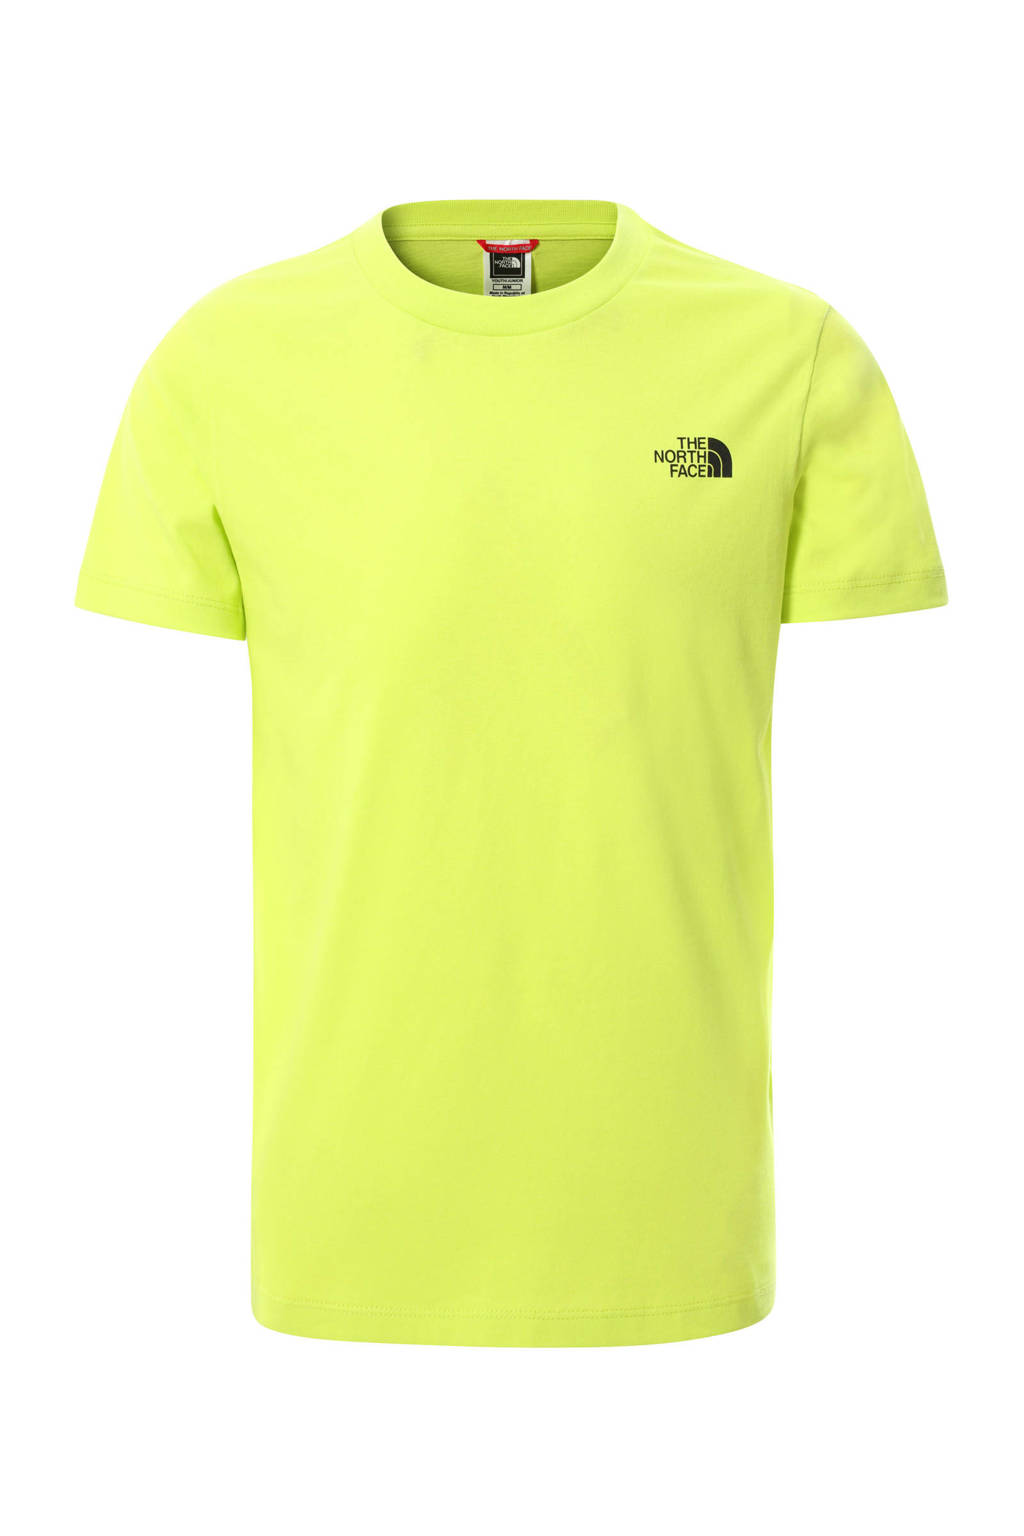 The North Face unisex T-shirt Simple Dome groen, Geel